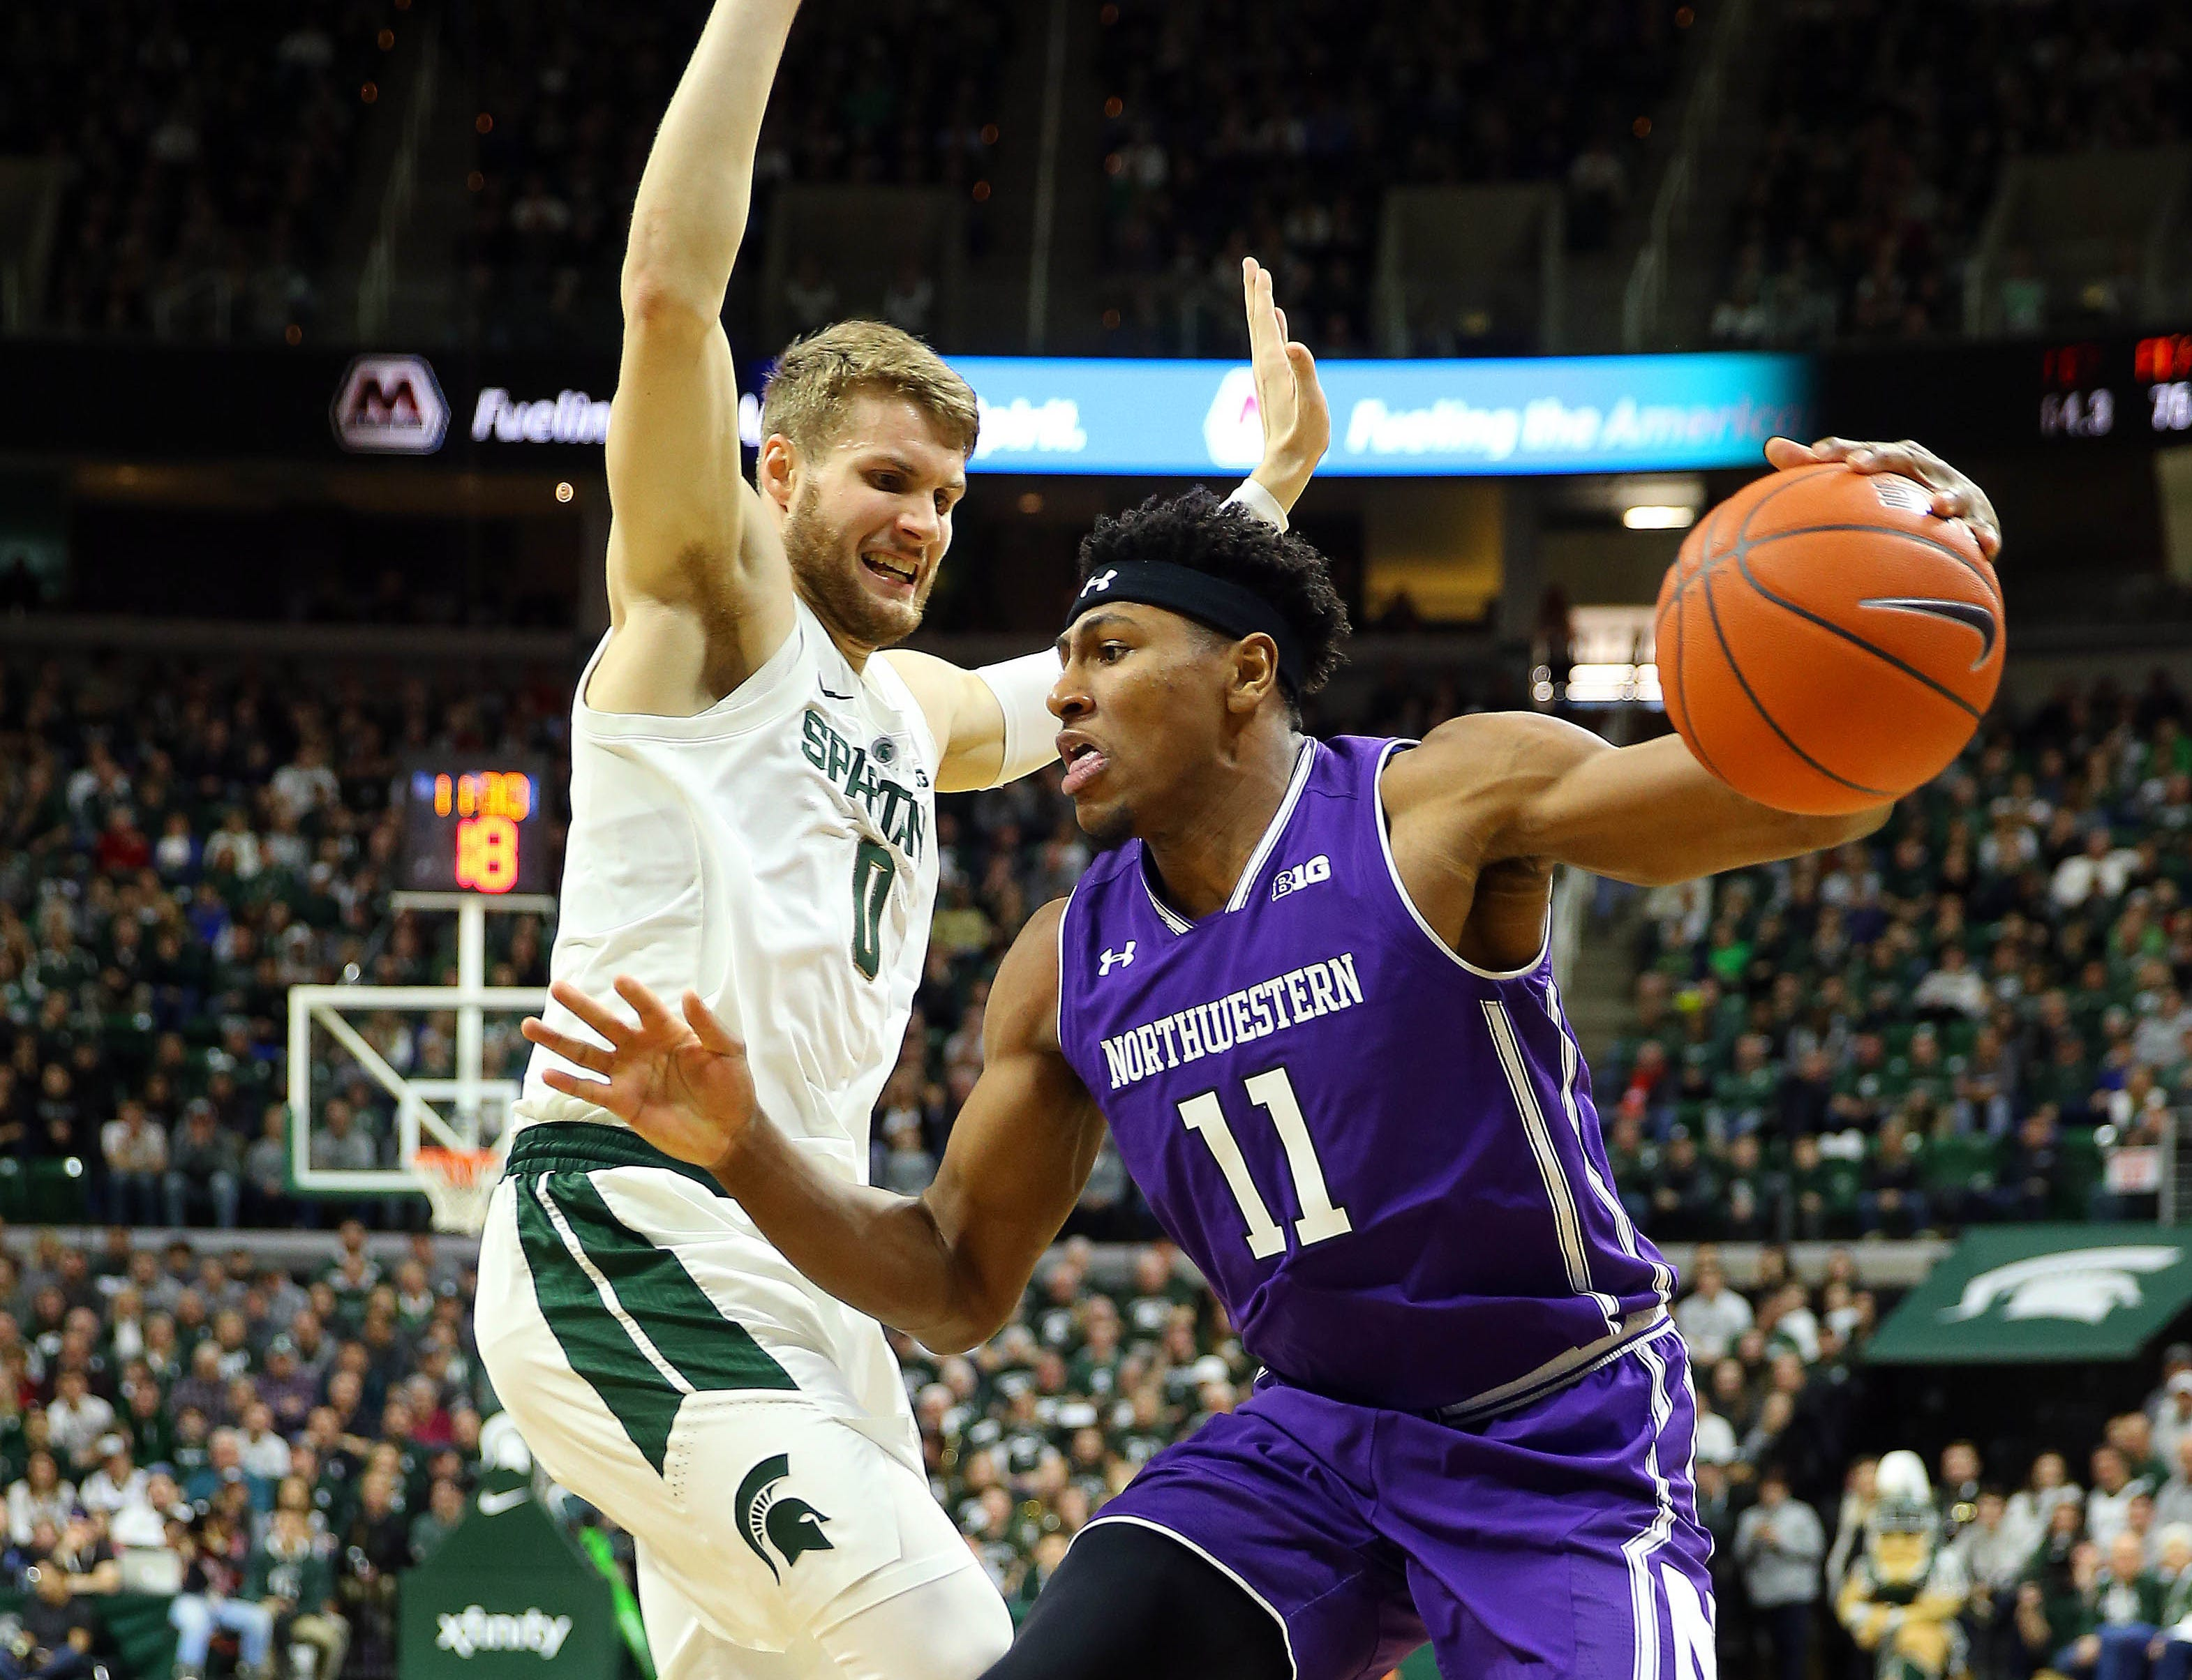 Jan 2, 2019; East Lansing, MI, USA; Northwestern Wildcats guard Anthony Gaines (11) drives to the basket against Michigan State Spartans forward Kyle Ahrens (0) during the first half of a game at the Breslin Center. Mandatory Credit: Mike Carter-USA TODAY Sports